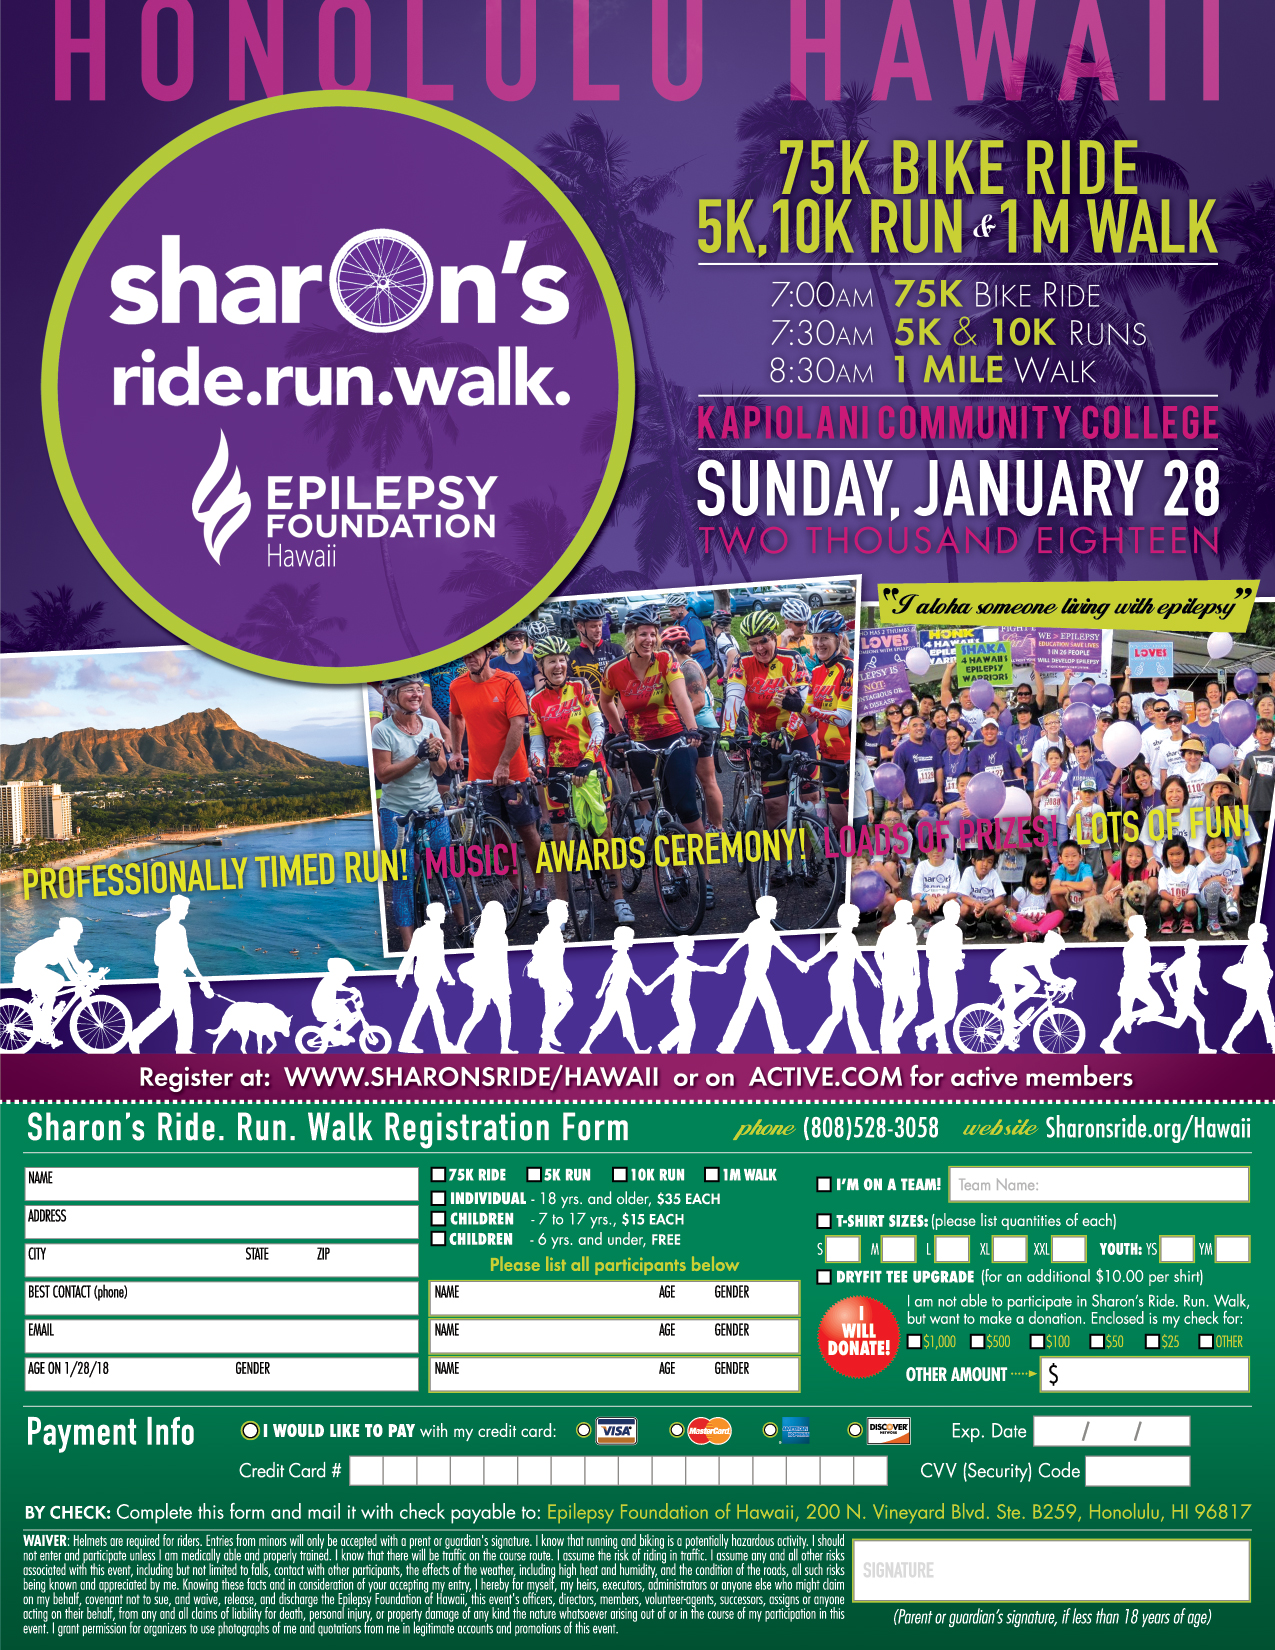 Register and make your team today for the Sharon's Ride.Run.Walk on January 28, 2018!!!